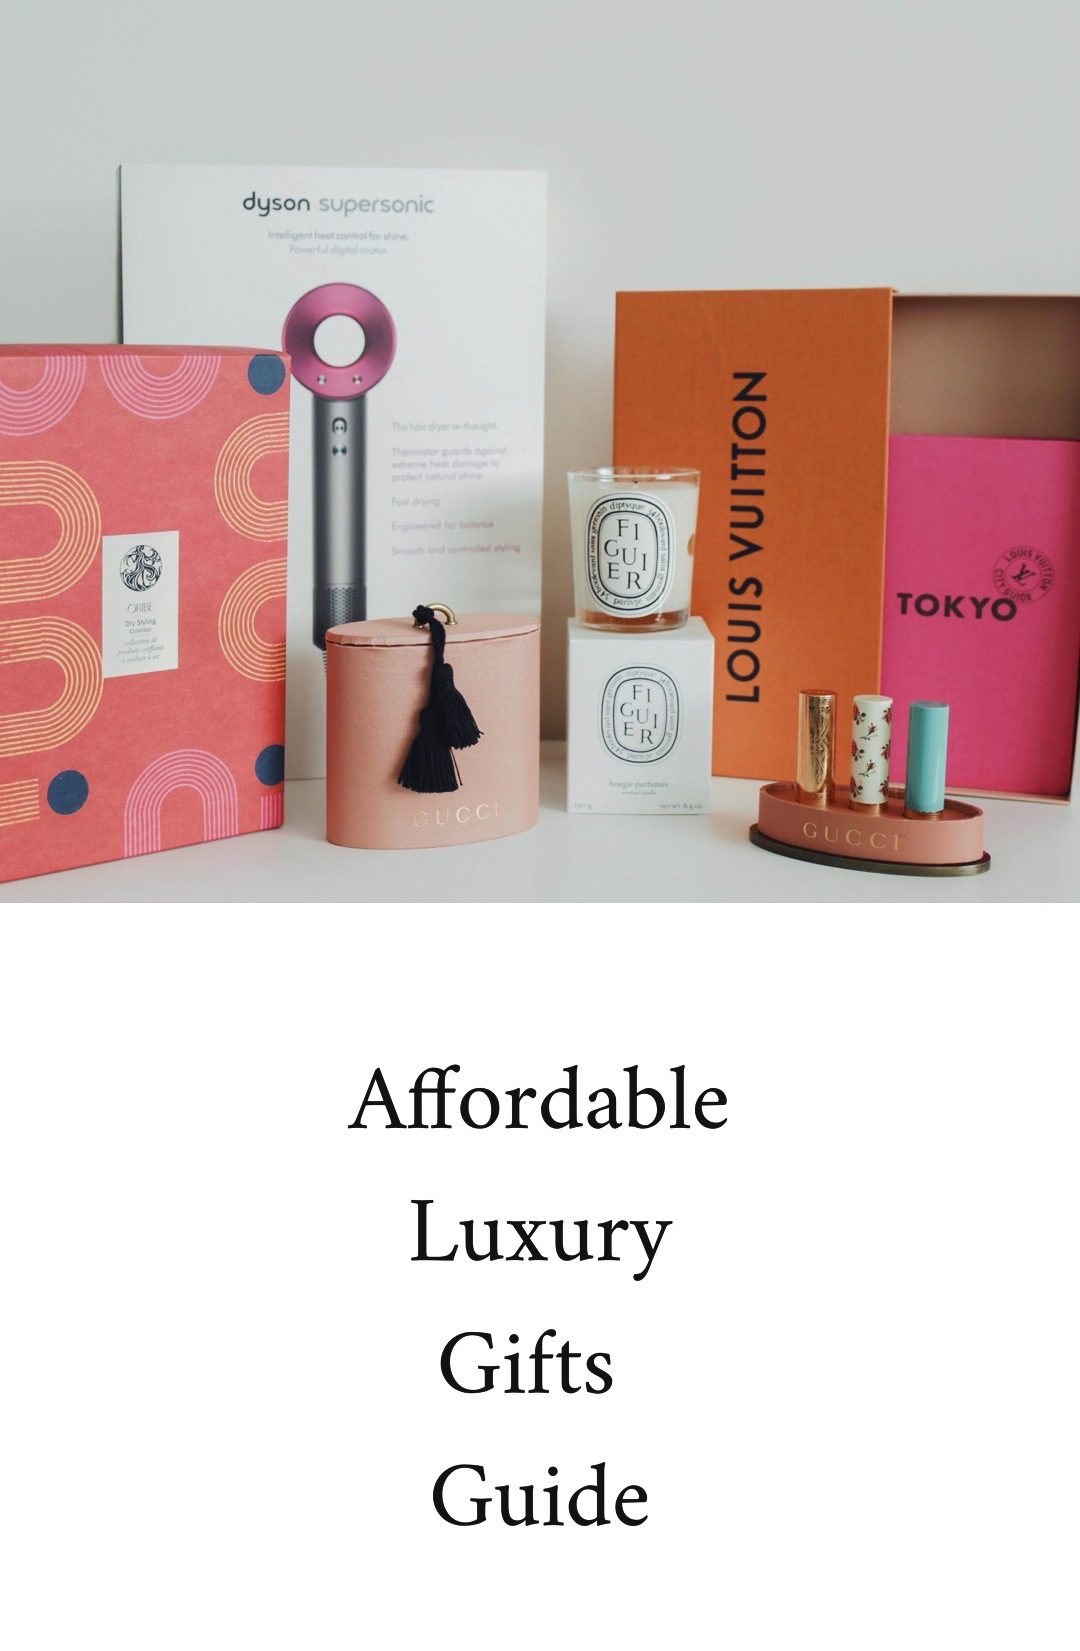 Valentine's day gift ideas for women 2020 – Affordable luxury gift ideas - Gucci lipstick, Louis Vuitton Guide, Diptyque candle, Dyson hair dryer, Oribe holiday collection set